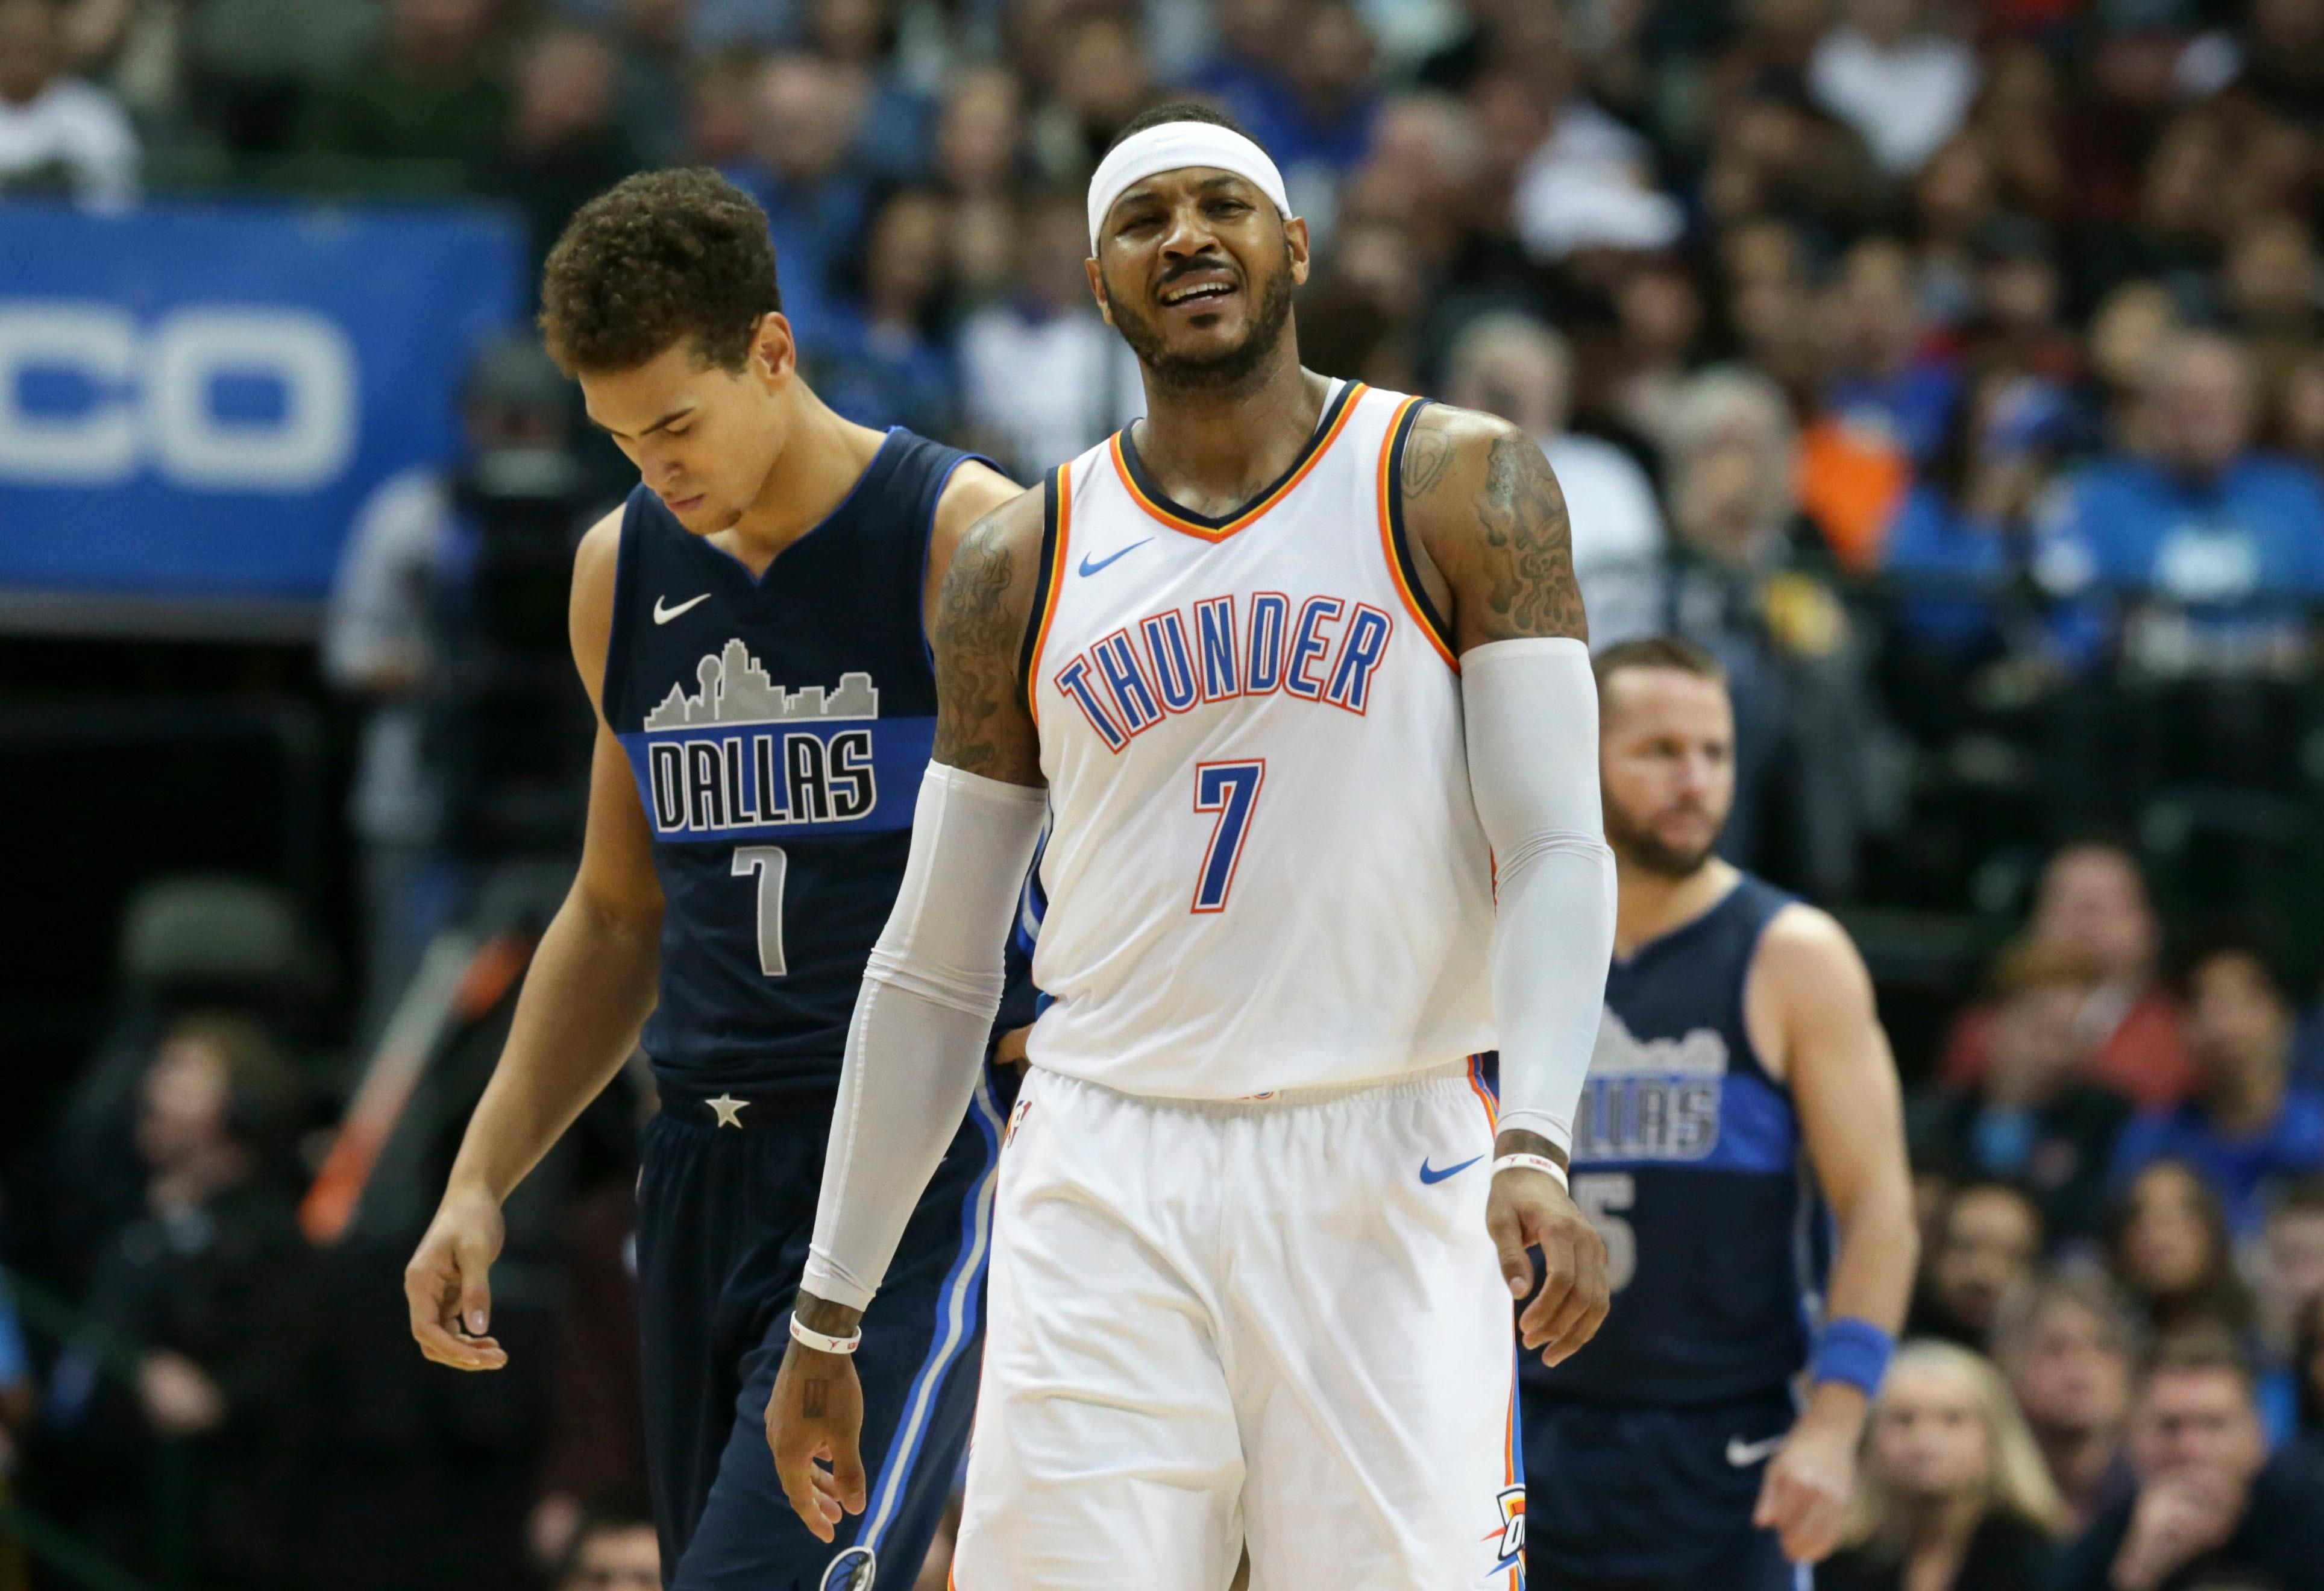 Oklahoma City Thunder forward Carmelo Anthony, foreground, reacts to a call in front of Dallas Mavericks forward Dwight Powell, left, during the second half of an NBA basketball game in Dallas, Saturday, Nov. 25, 2017. (AP Photo/LM Otero)